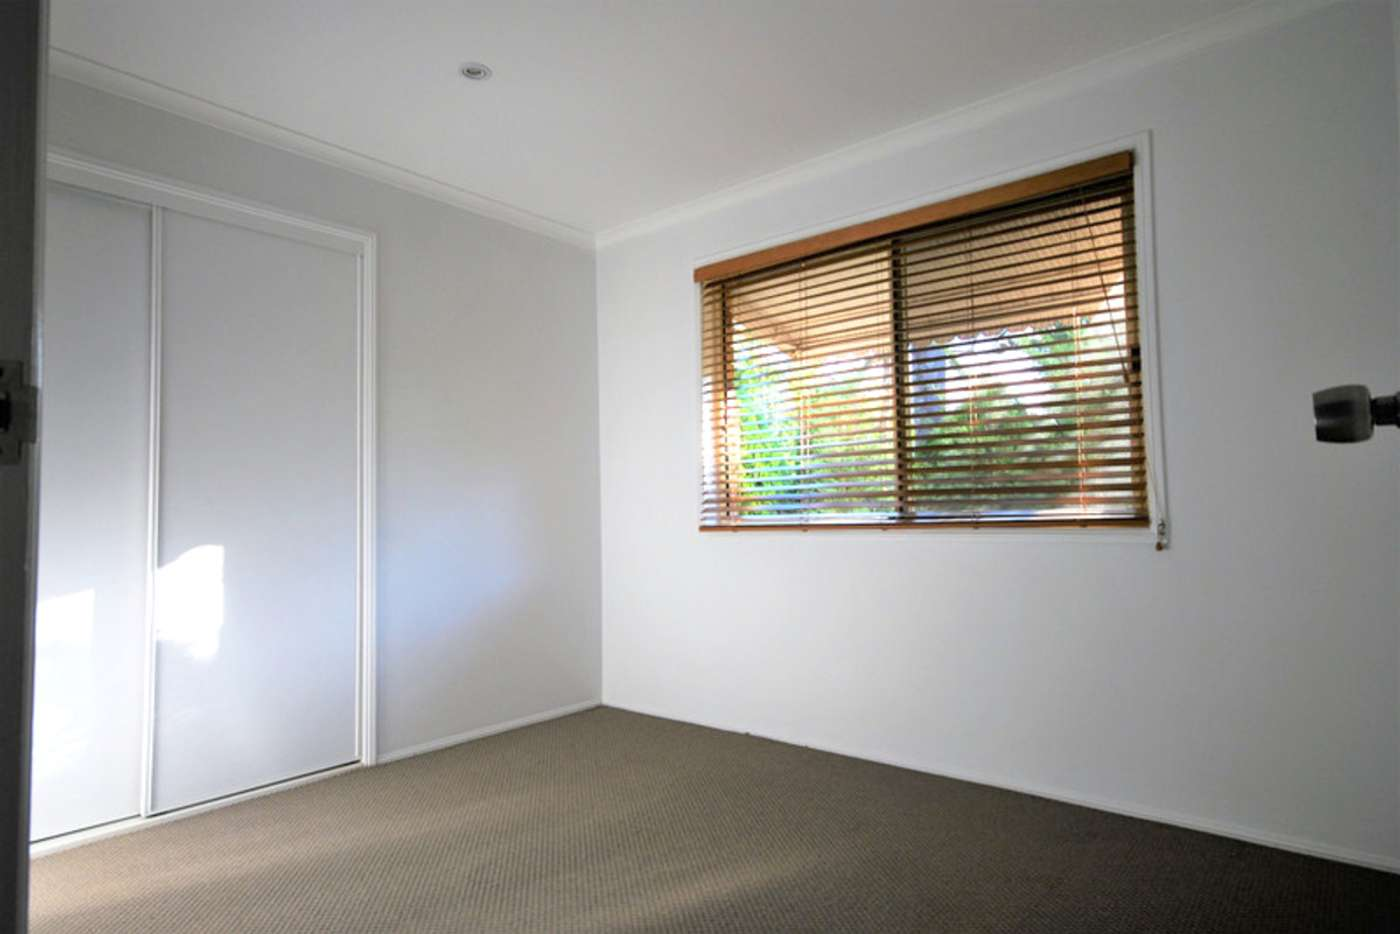 Sixth view of Homely house listing, 13 Southlake Drive, Varsity Lakes QLD 4227